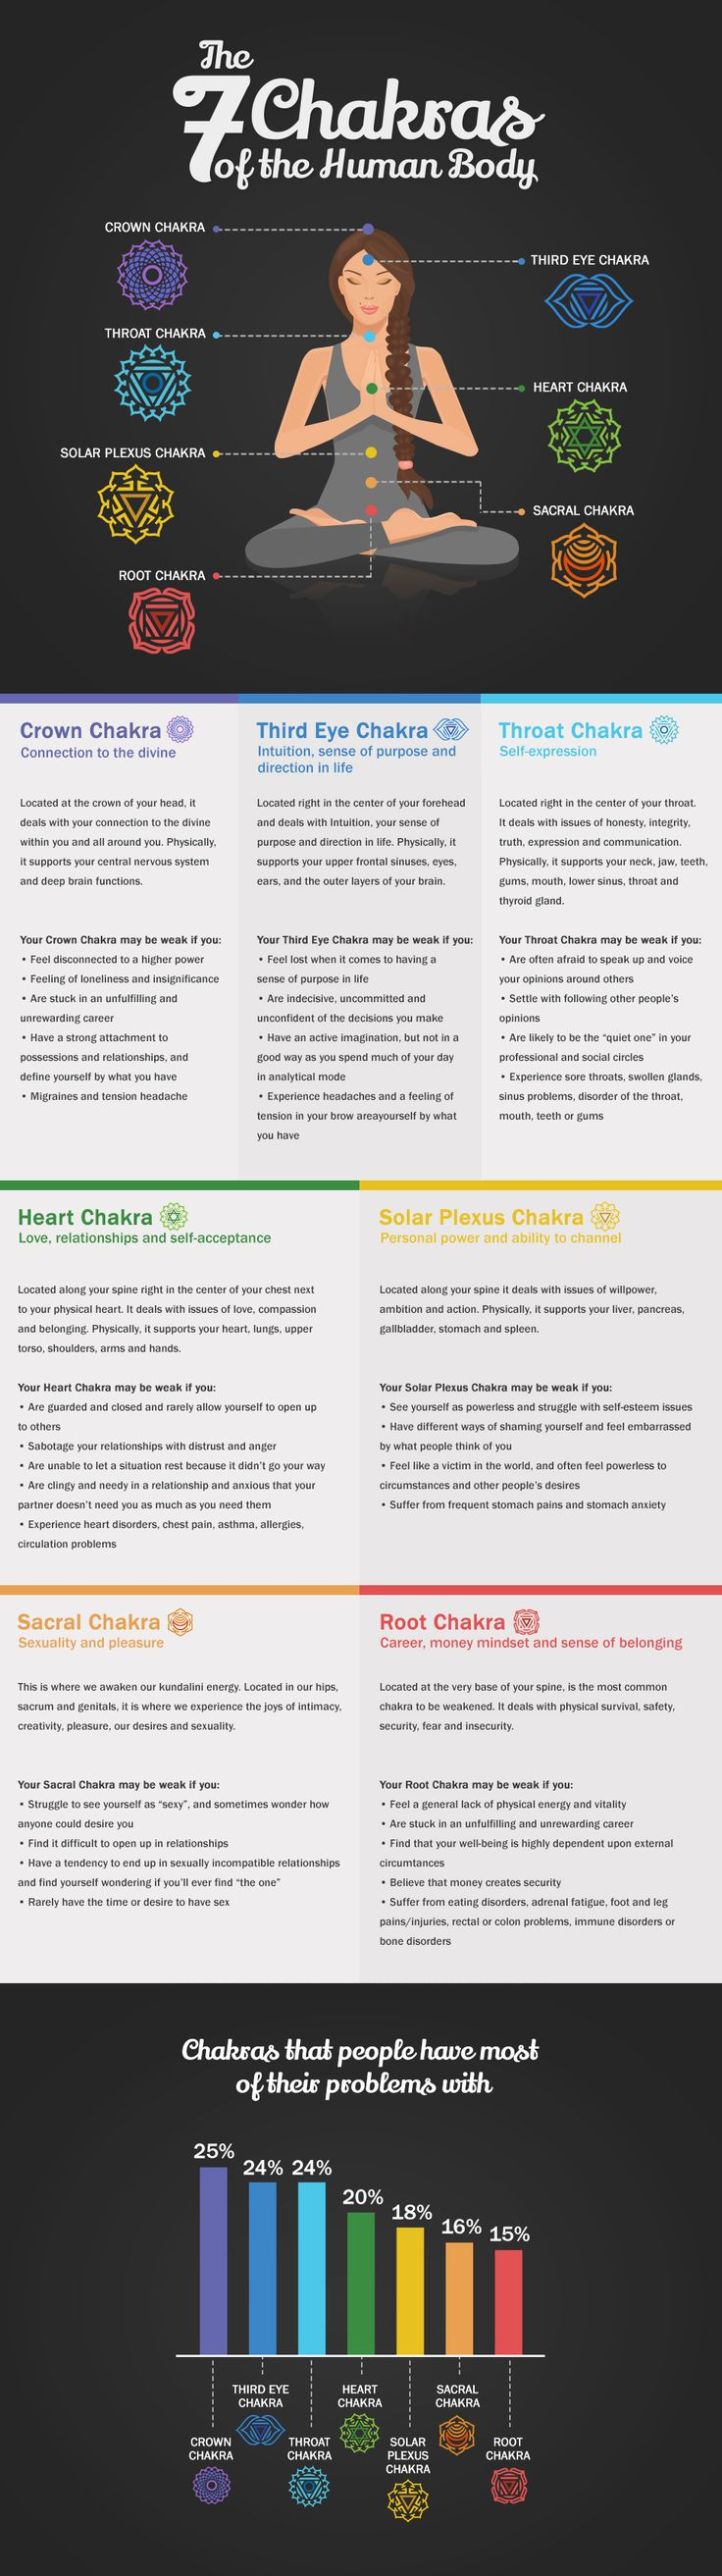 Chakras Infographic!  Come to Clarkston Hot Yoga in Clarkston, MI for all of your Yoga and fitness needs!  Feel free to call (248) 620-7101 or visit our website www.clarkstonhotyoga.com for more information about the classes we offer!